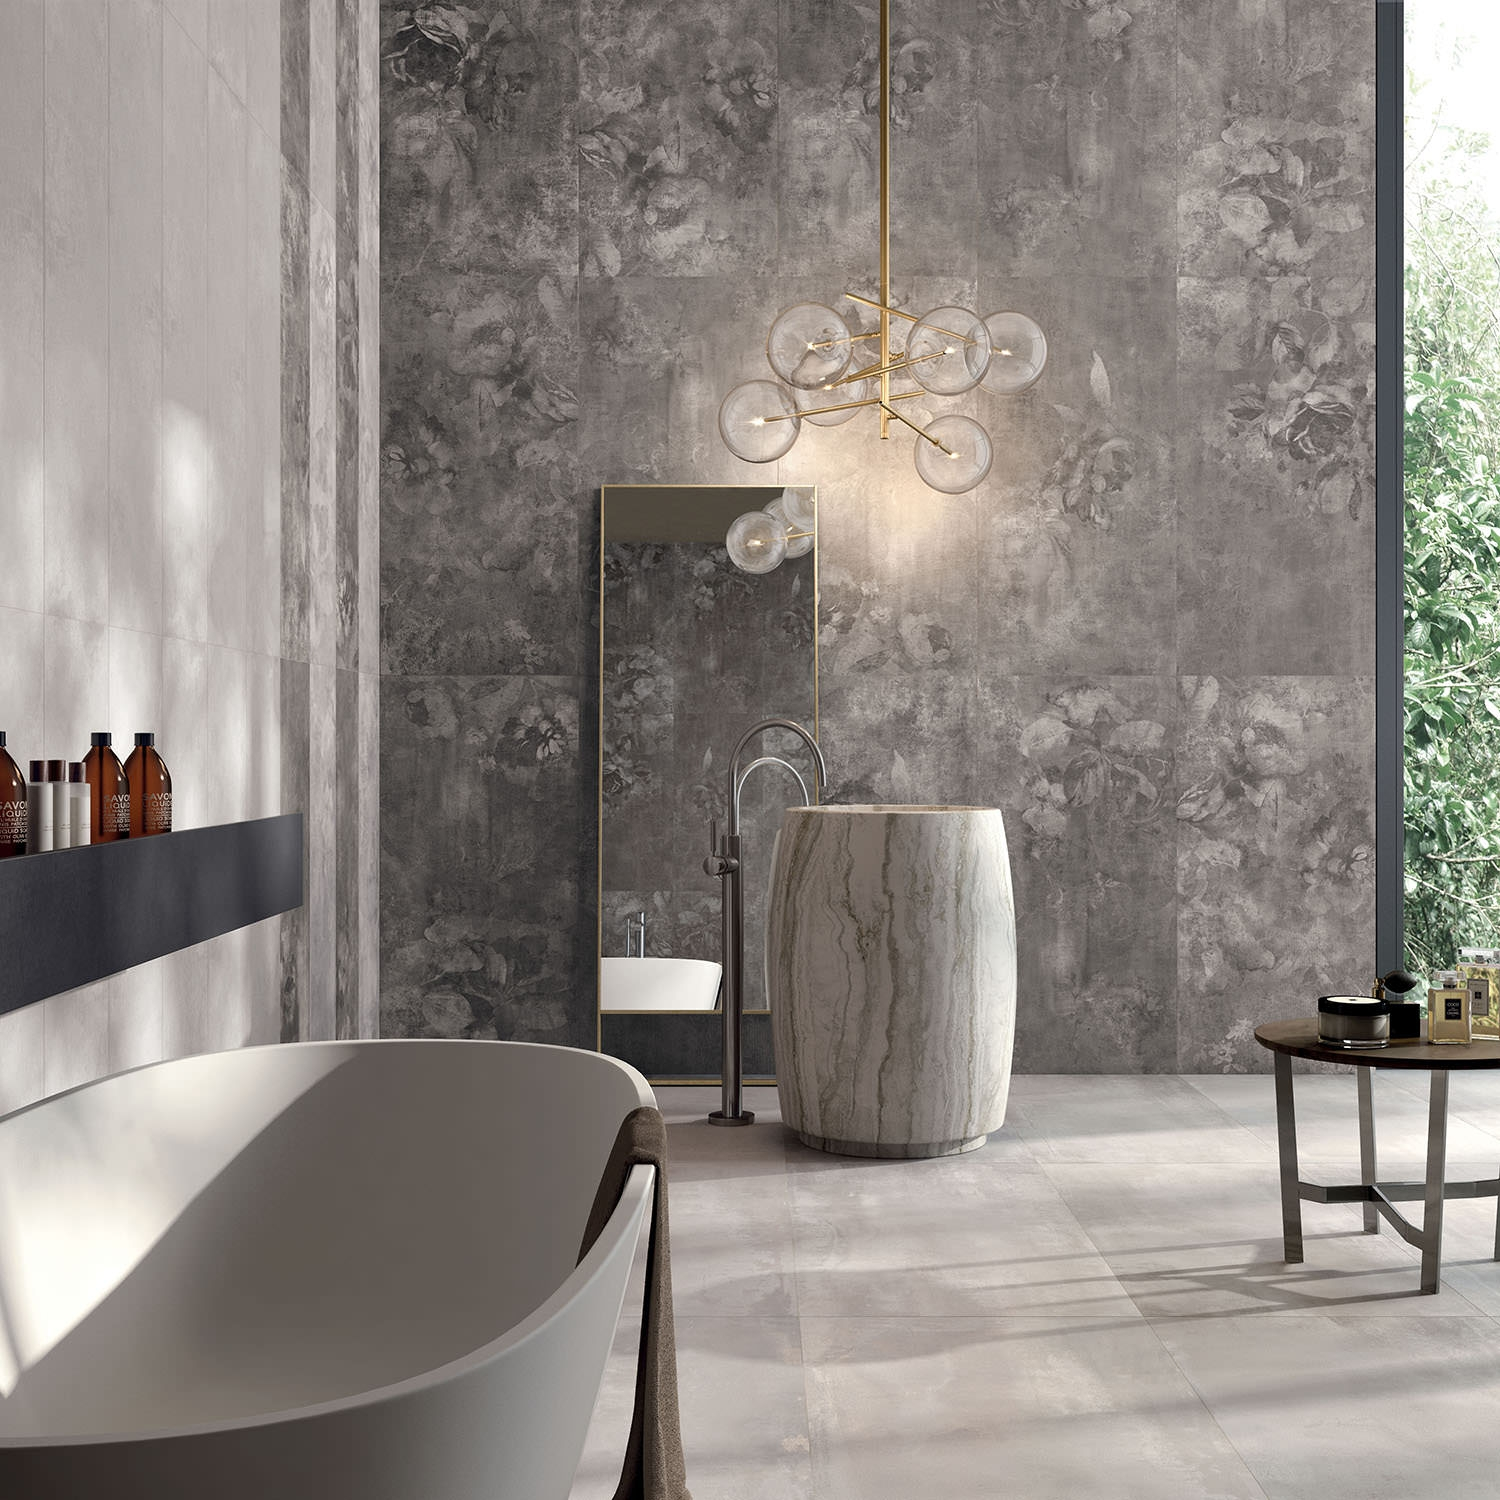 Do up by abk criver ceramiche - Piastrelle rettificate ...